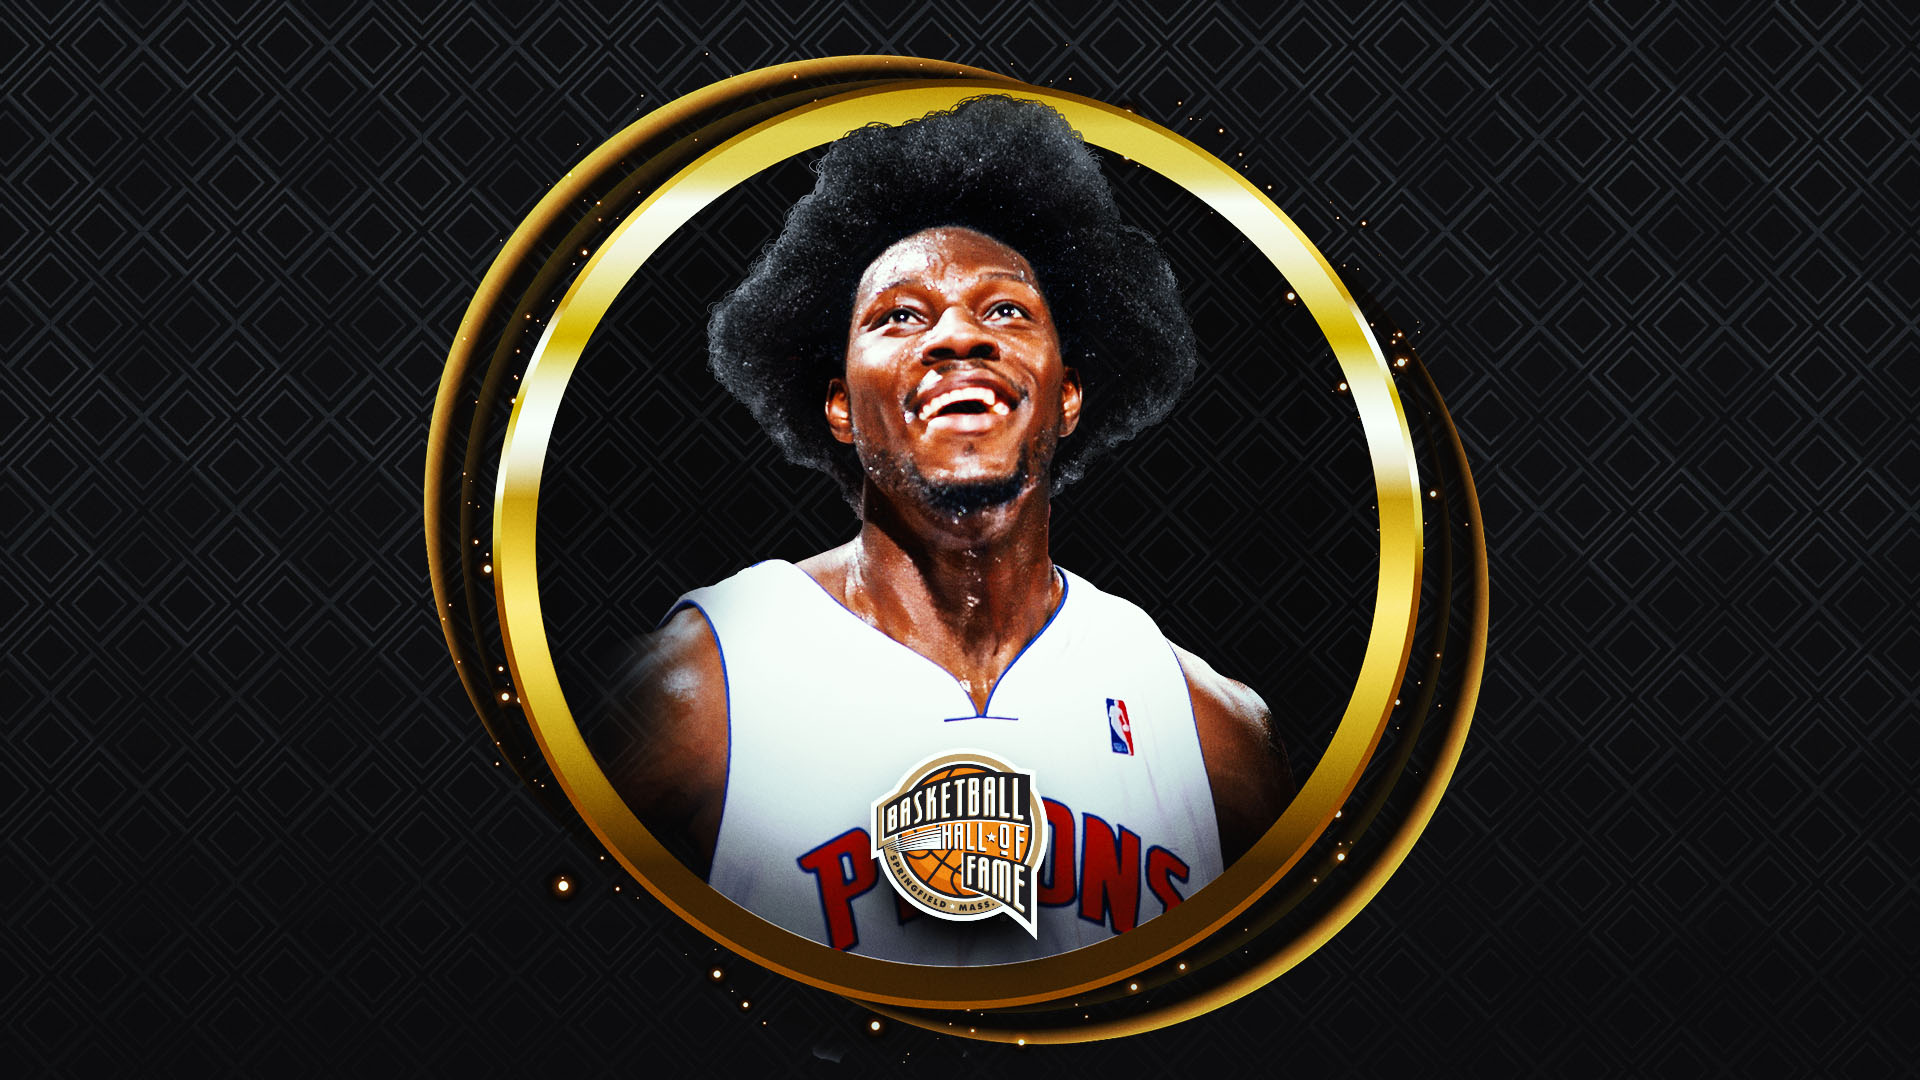 Ben Wallace went from undrafted to Hall of Fame